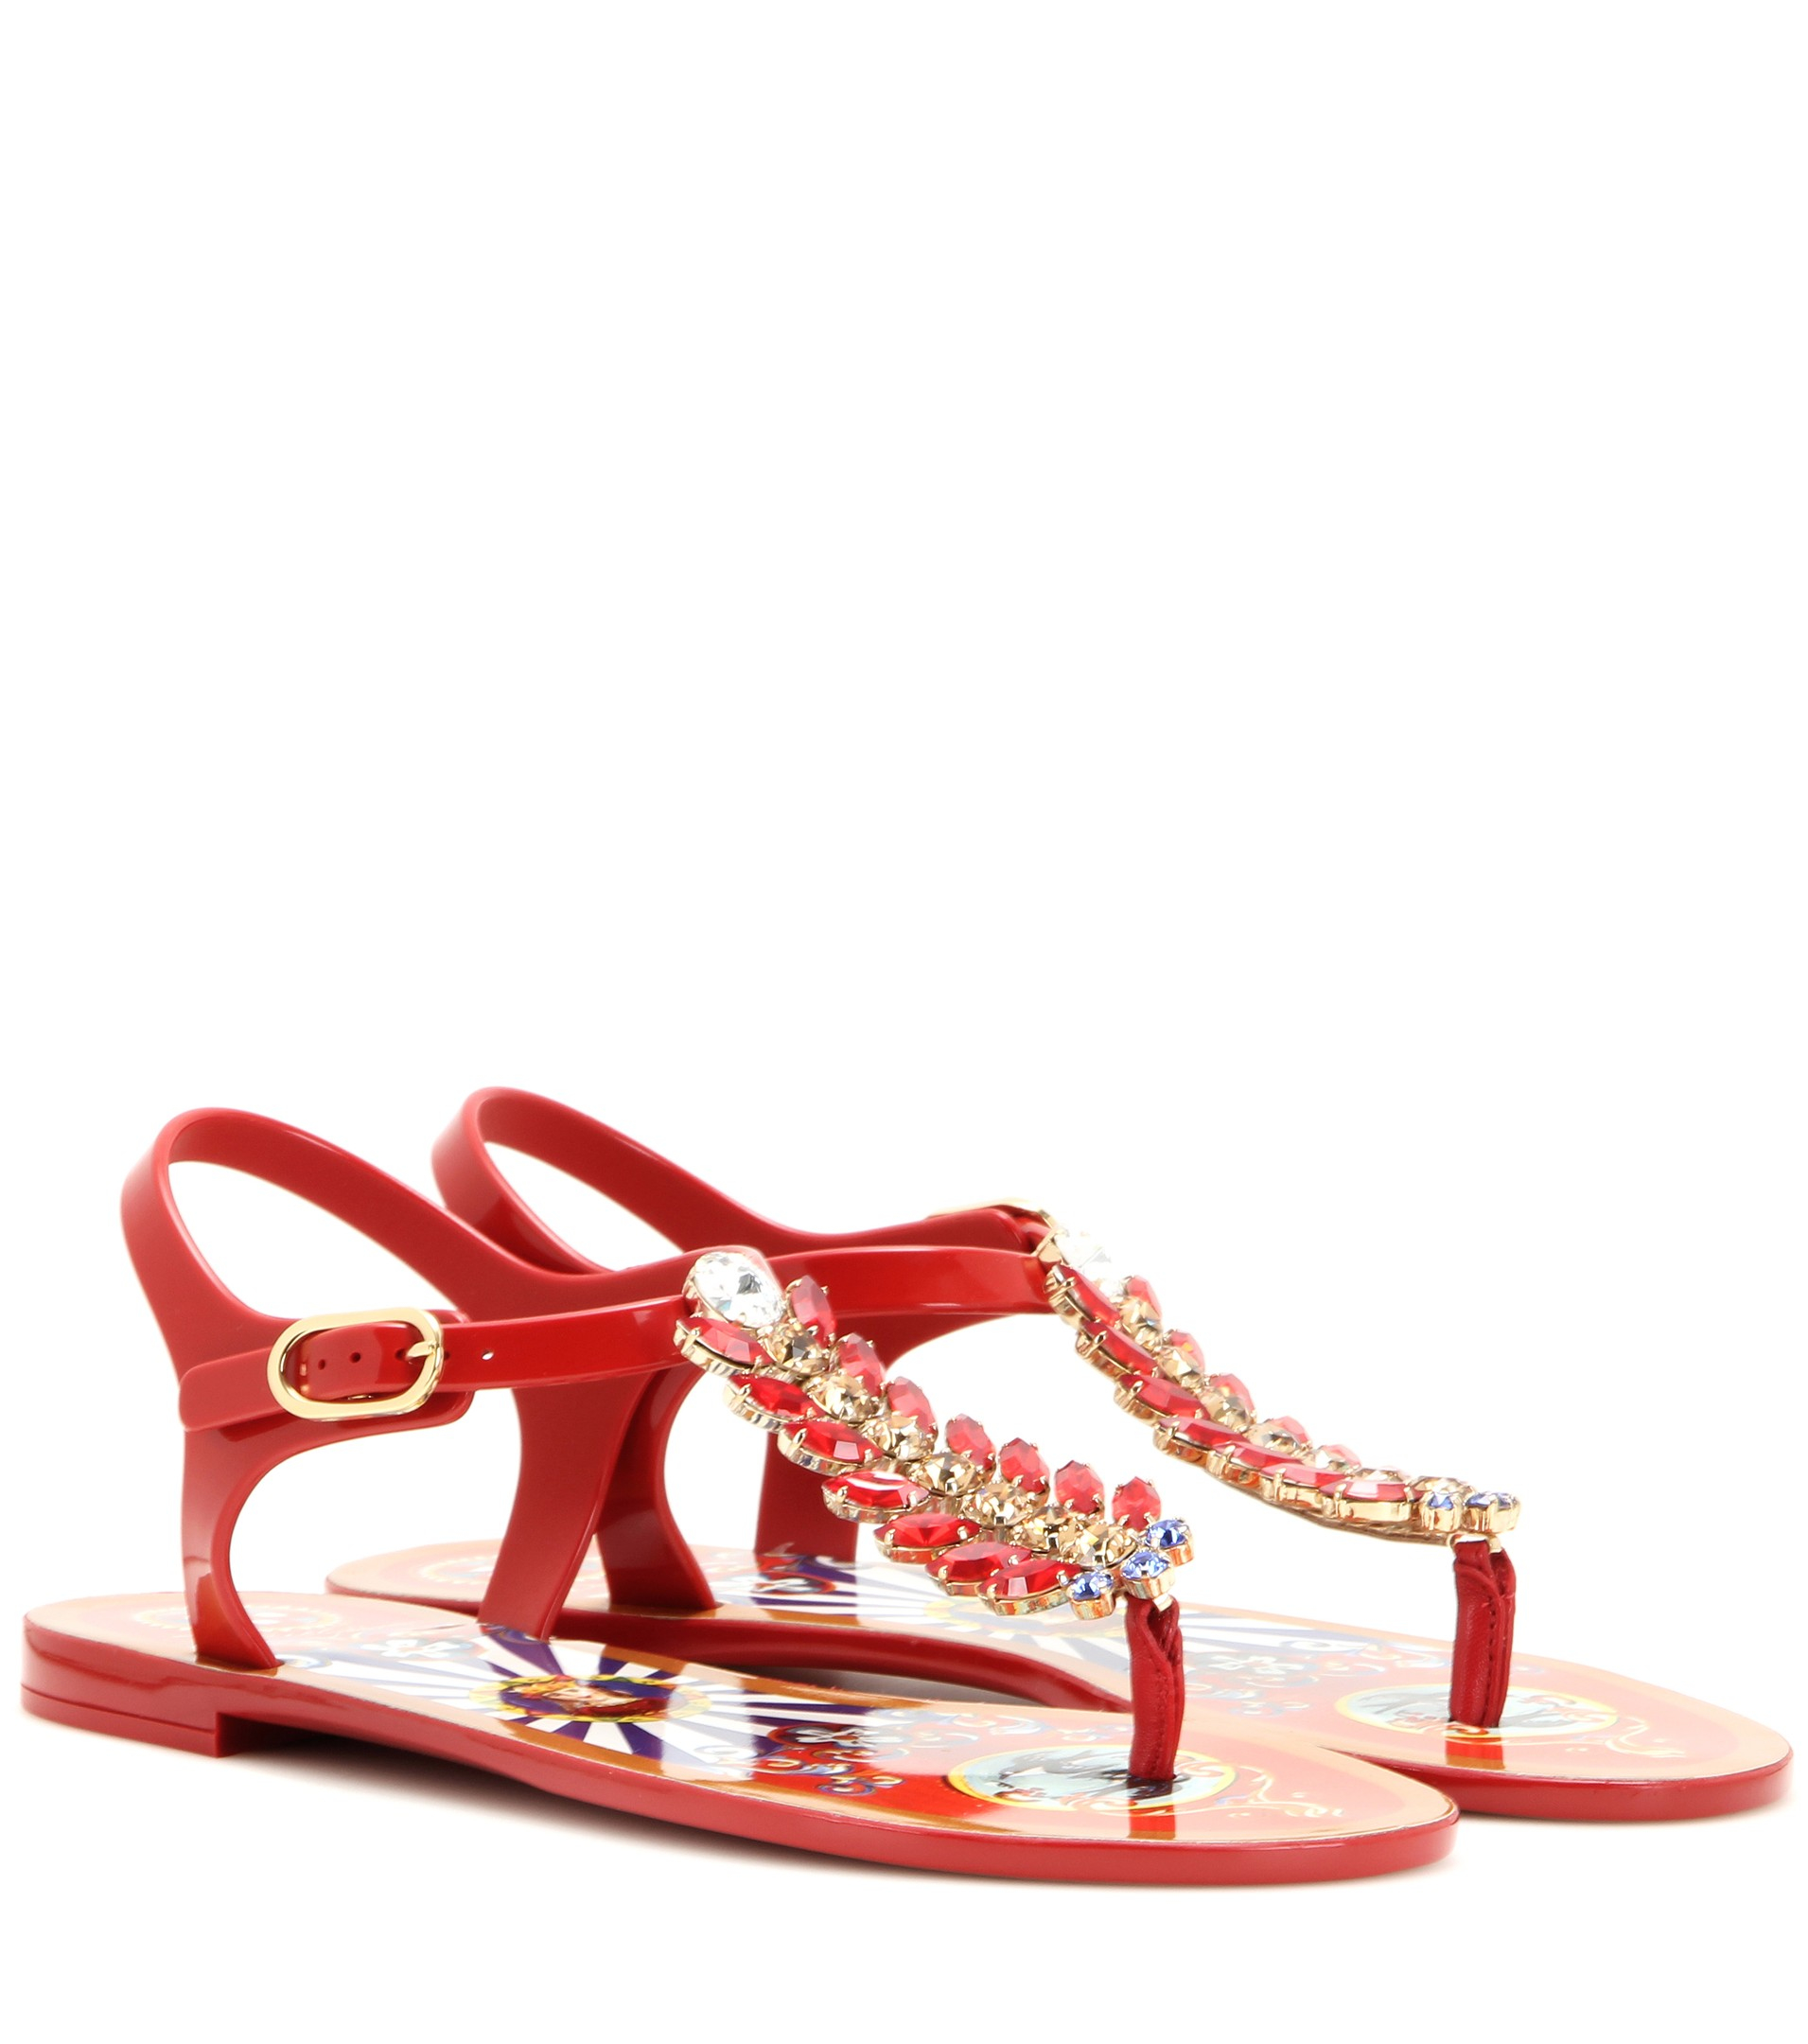 Dolceamp; Sandals In Red Gabbana Crystal Embellished Lyst c35ARjLq4